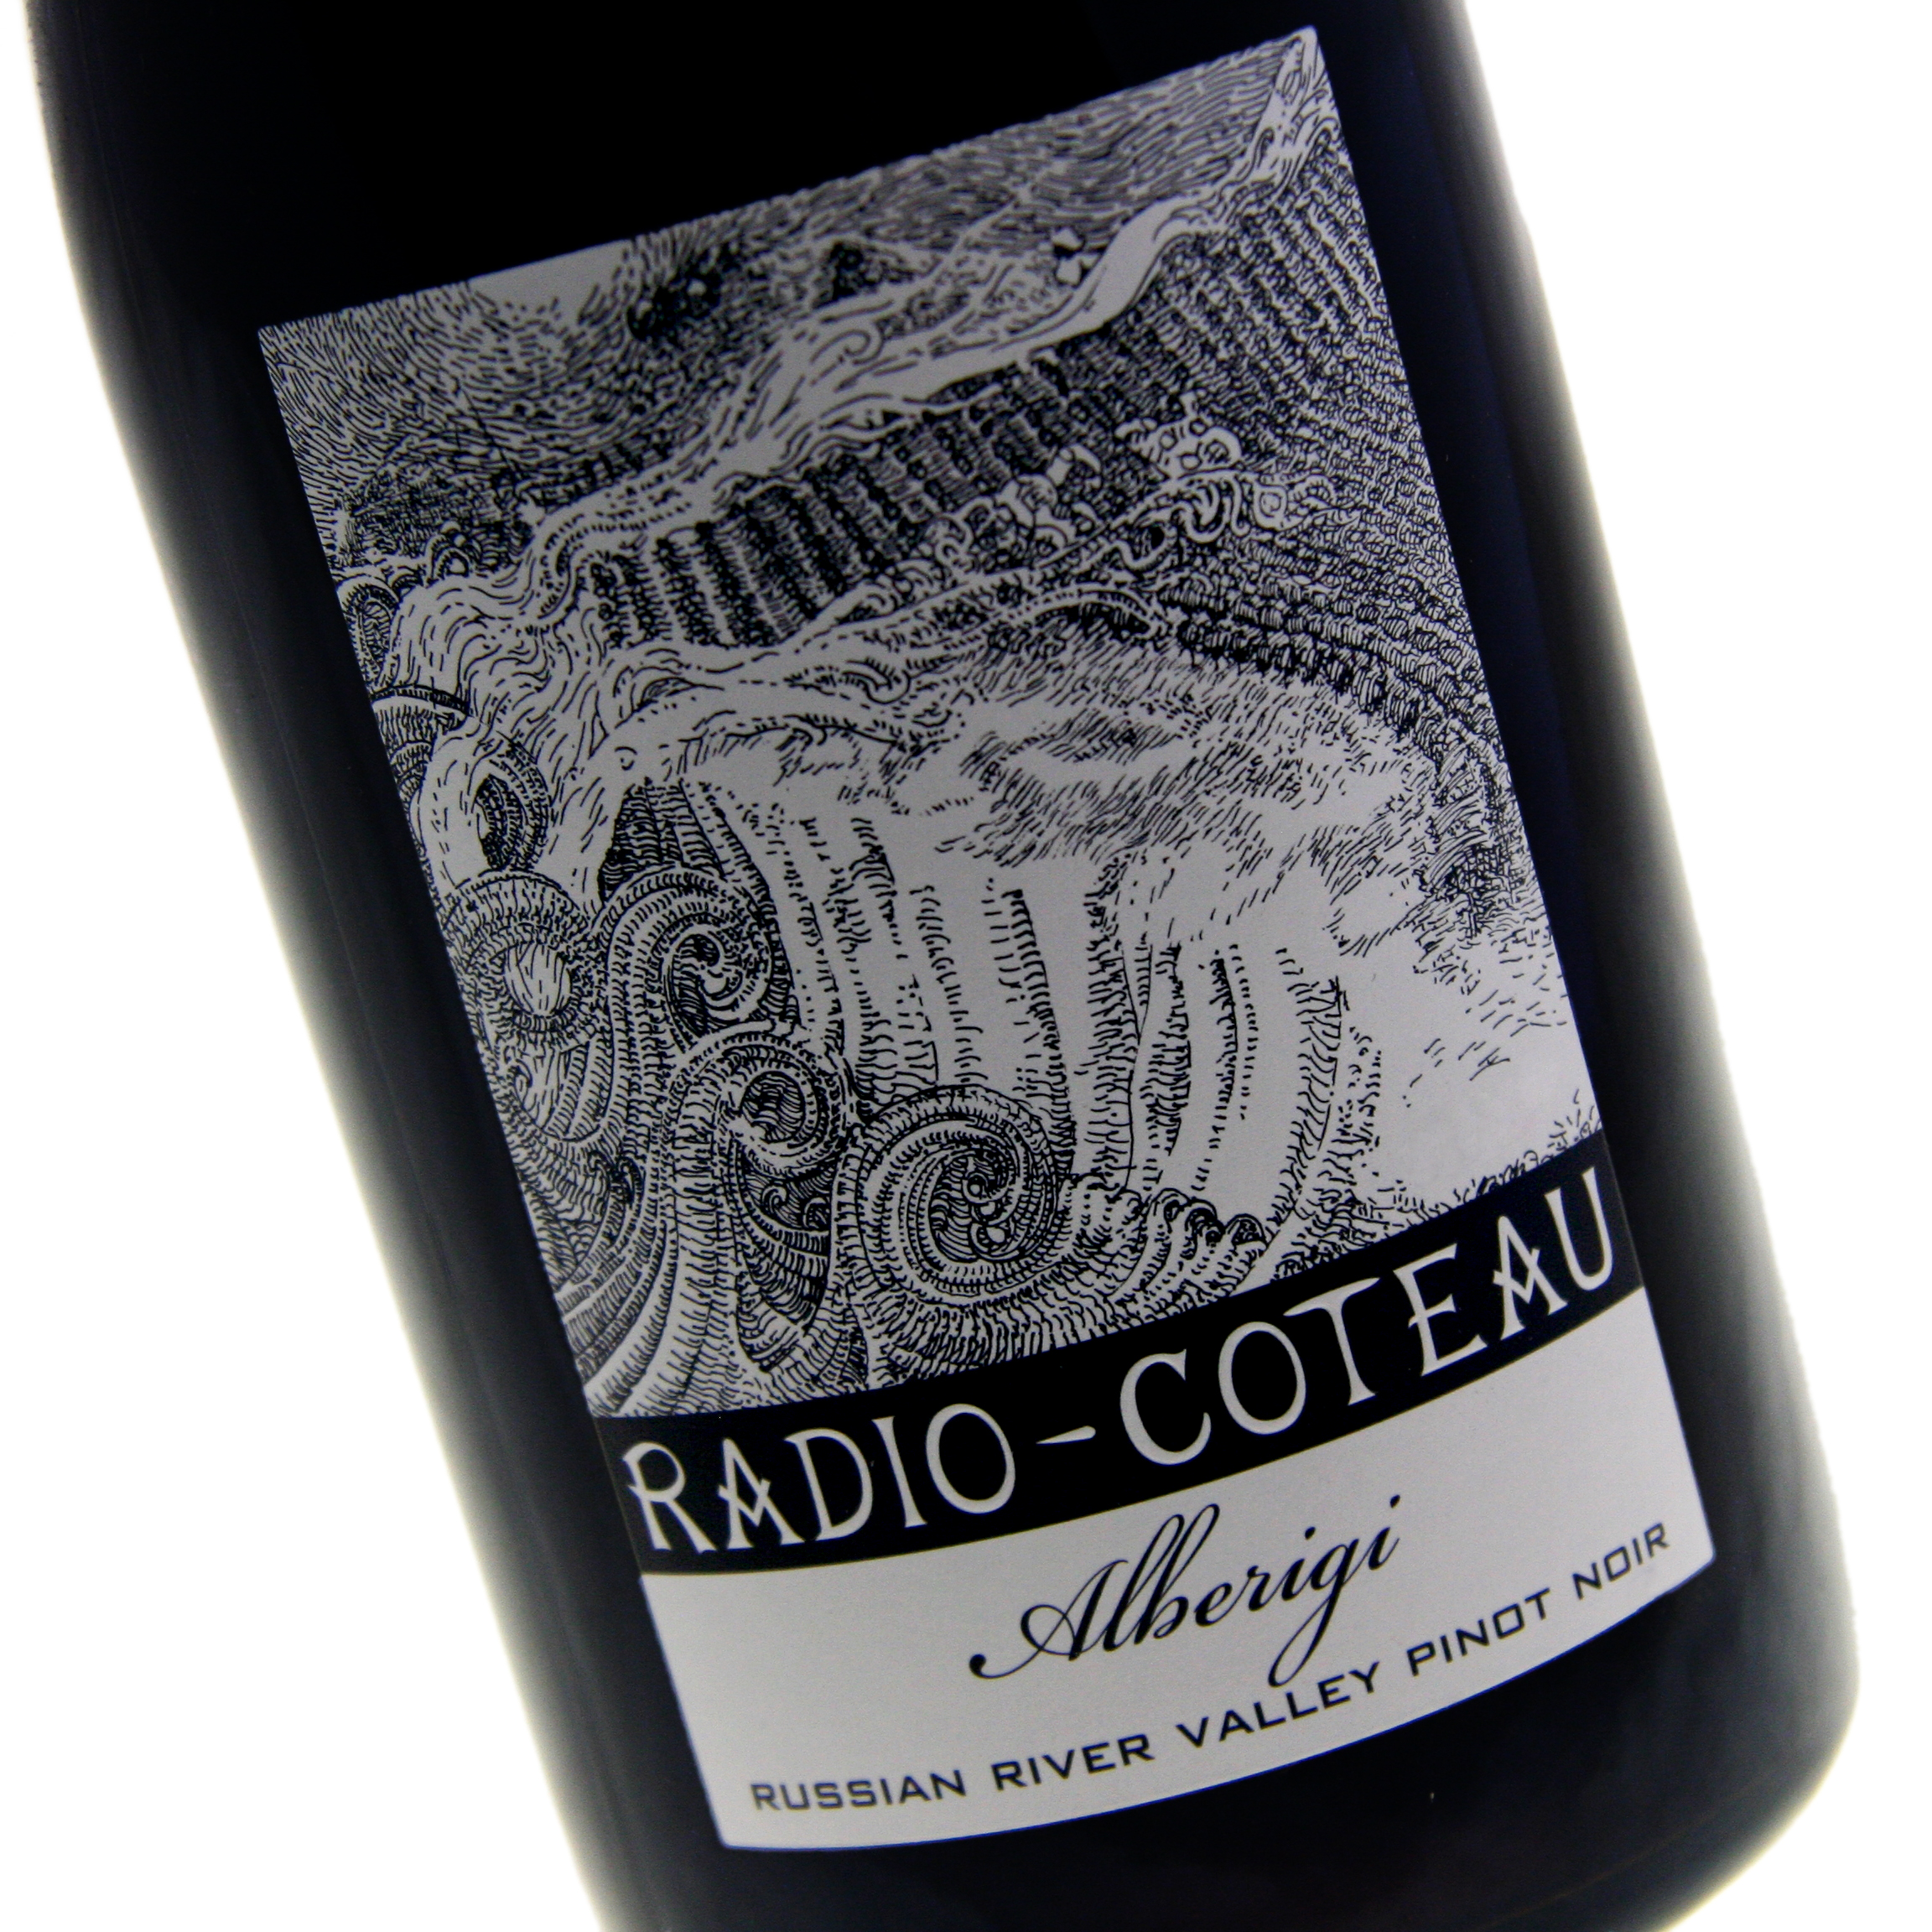 Radio-Coteau - Alberigi Vineyard Pinot Noir, Russian River Valley 2013 12x 75cl Bottles